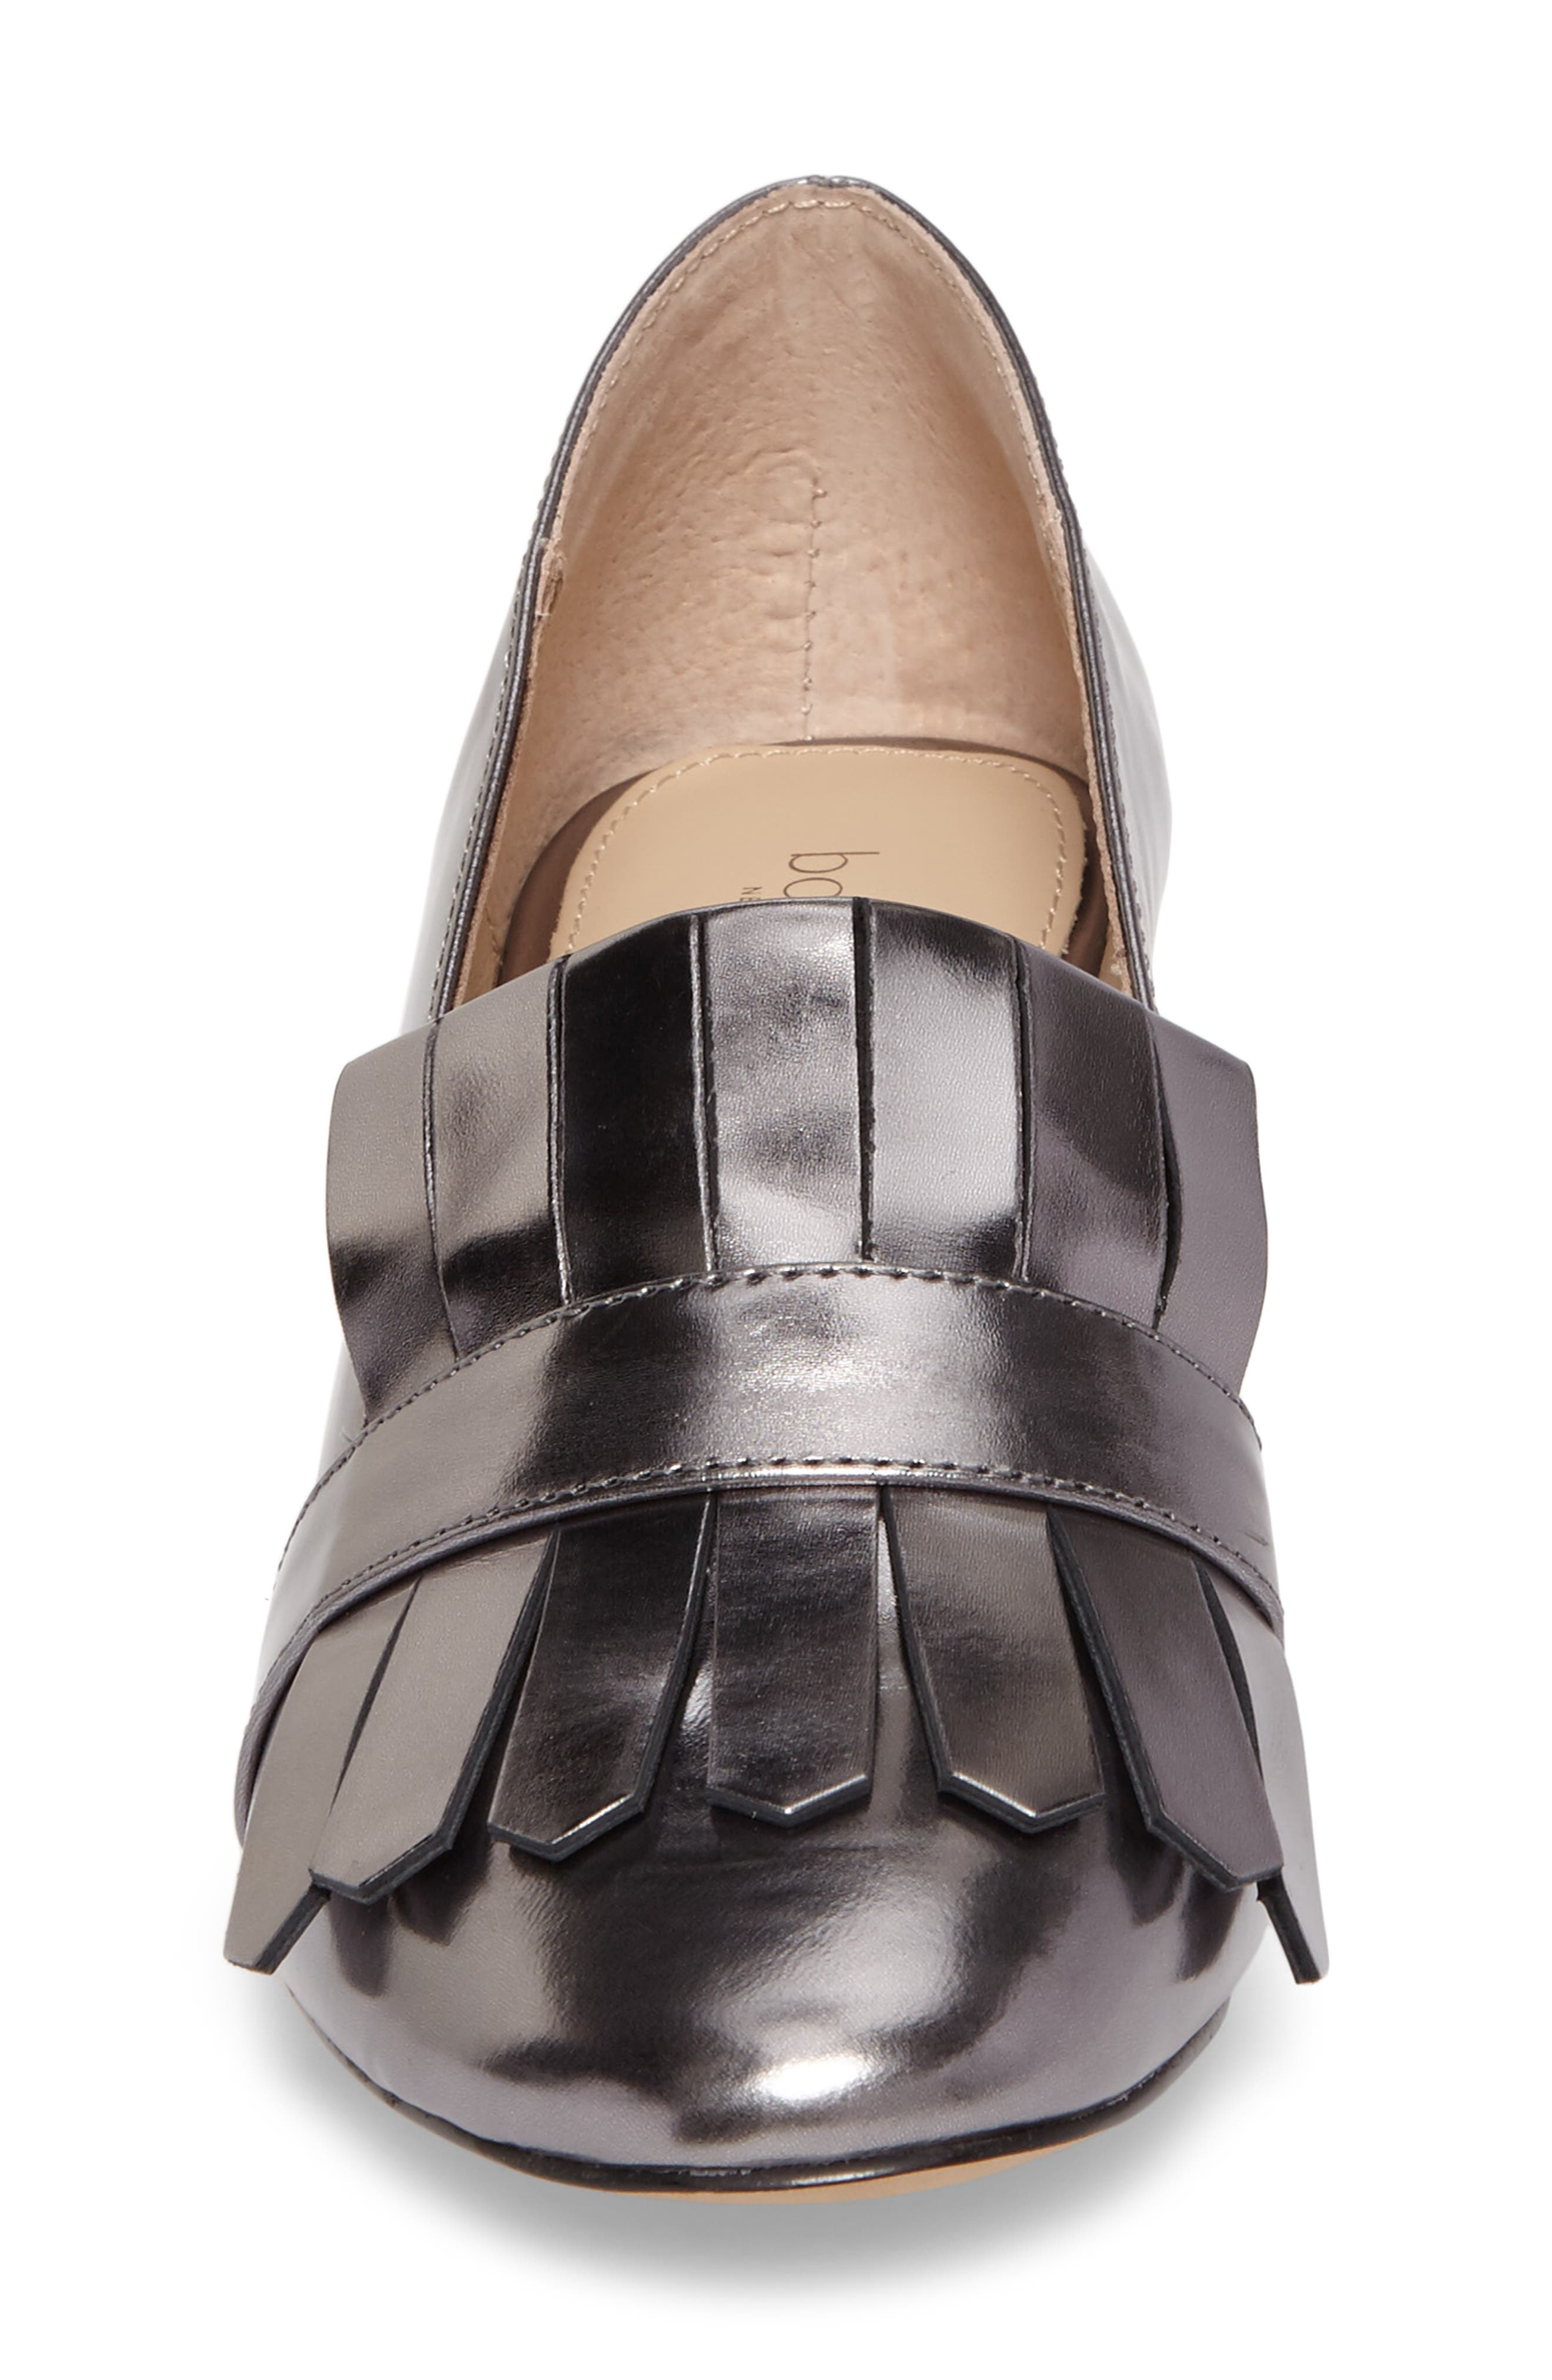 Olive Loafer Pump,                             Alternate thumbnail 4, color,                             PEWTER LEATHER